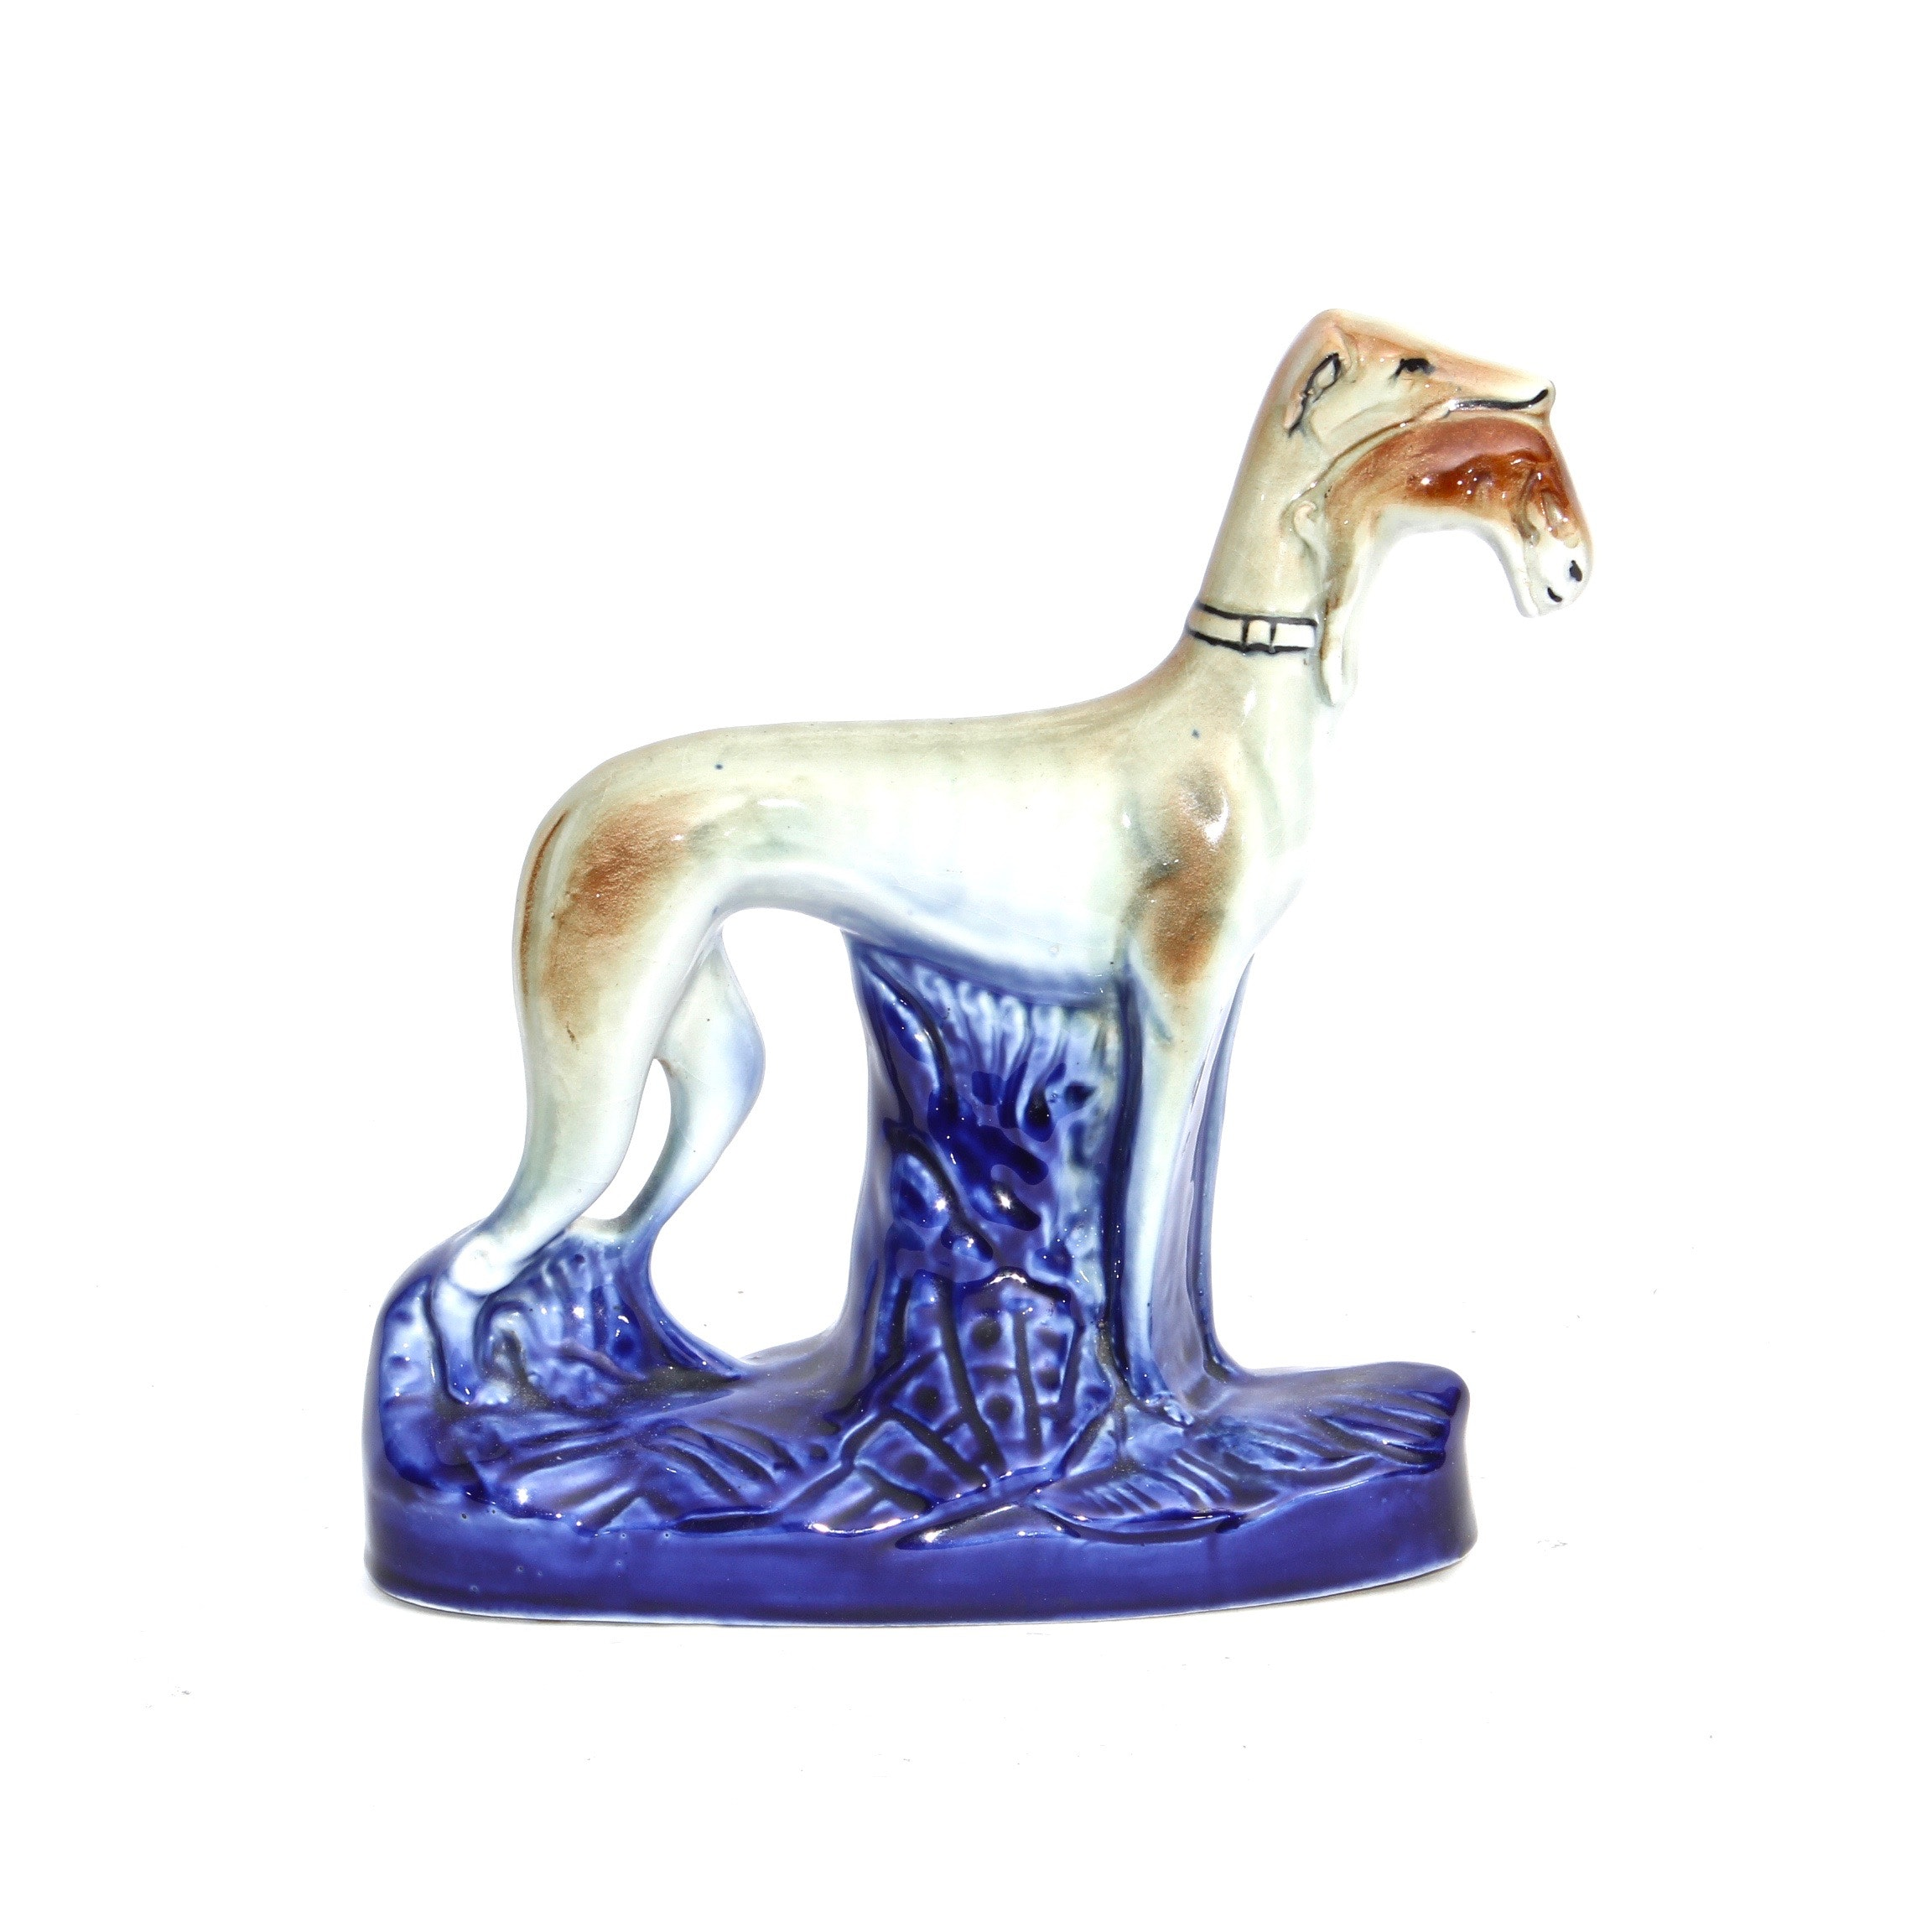 Staffordshire Style Ceramic Greyhound with Kill Figurine, Mid-Century